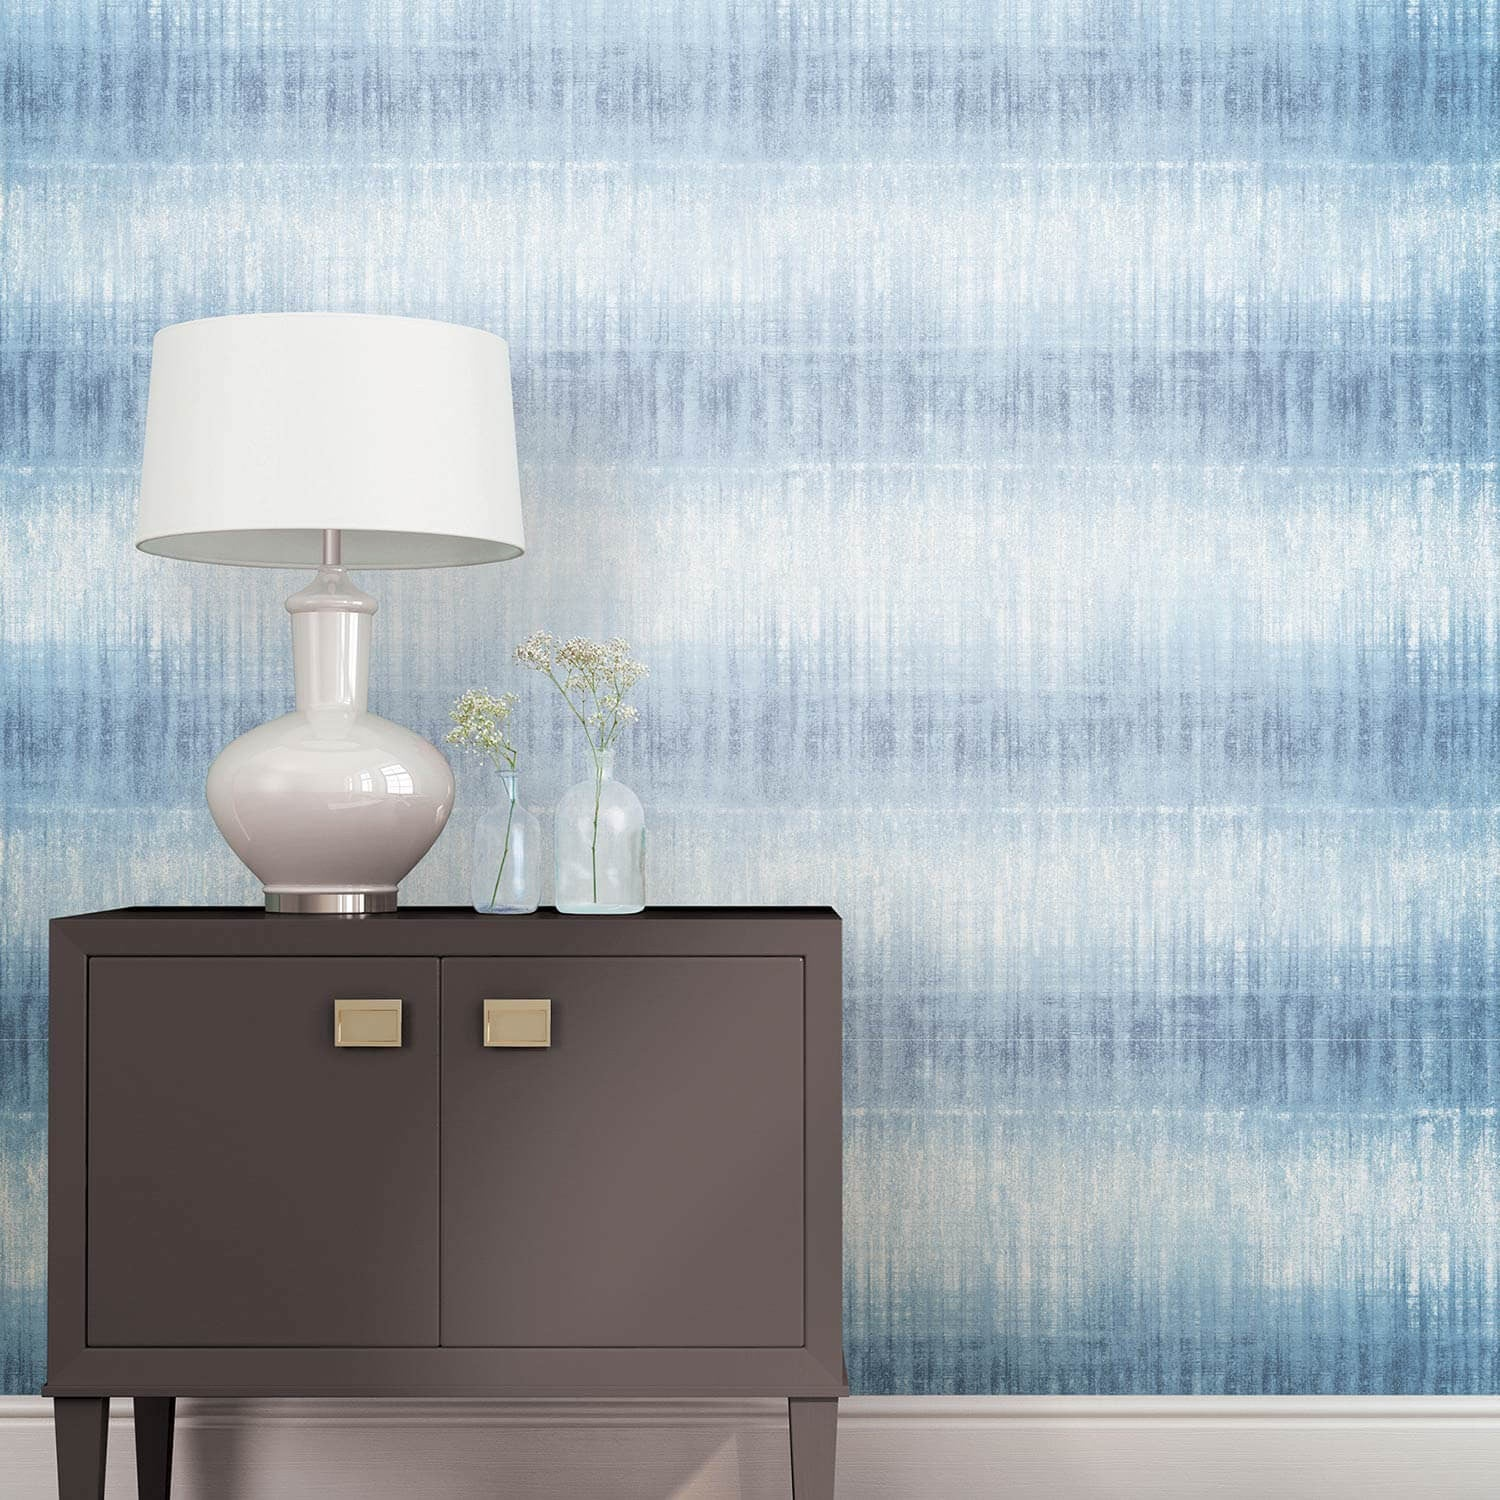 Peel and Stick Temporary Wall Paper   Tie Dye Stripe. Peel and Stick Temporary Wall Paper   Tie Dye Stripe  Dormify